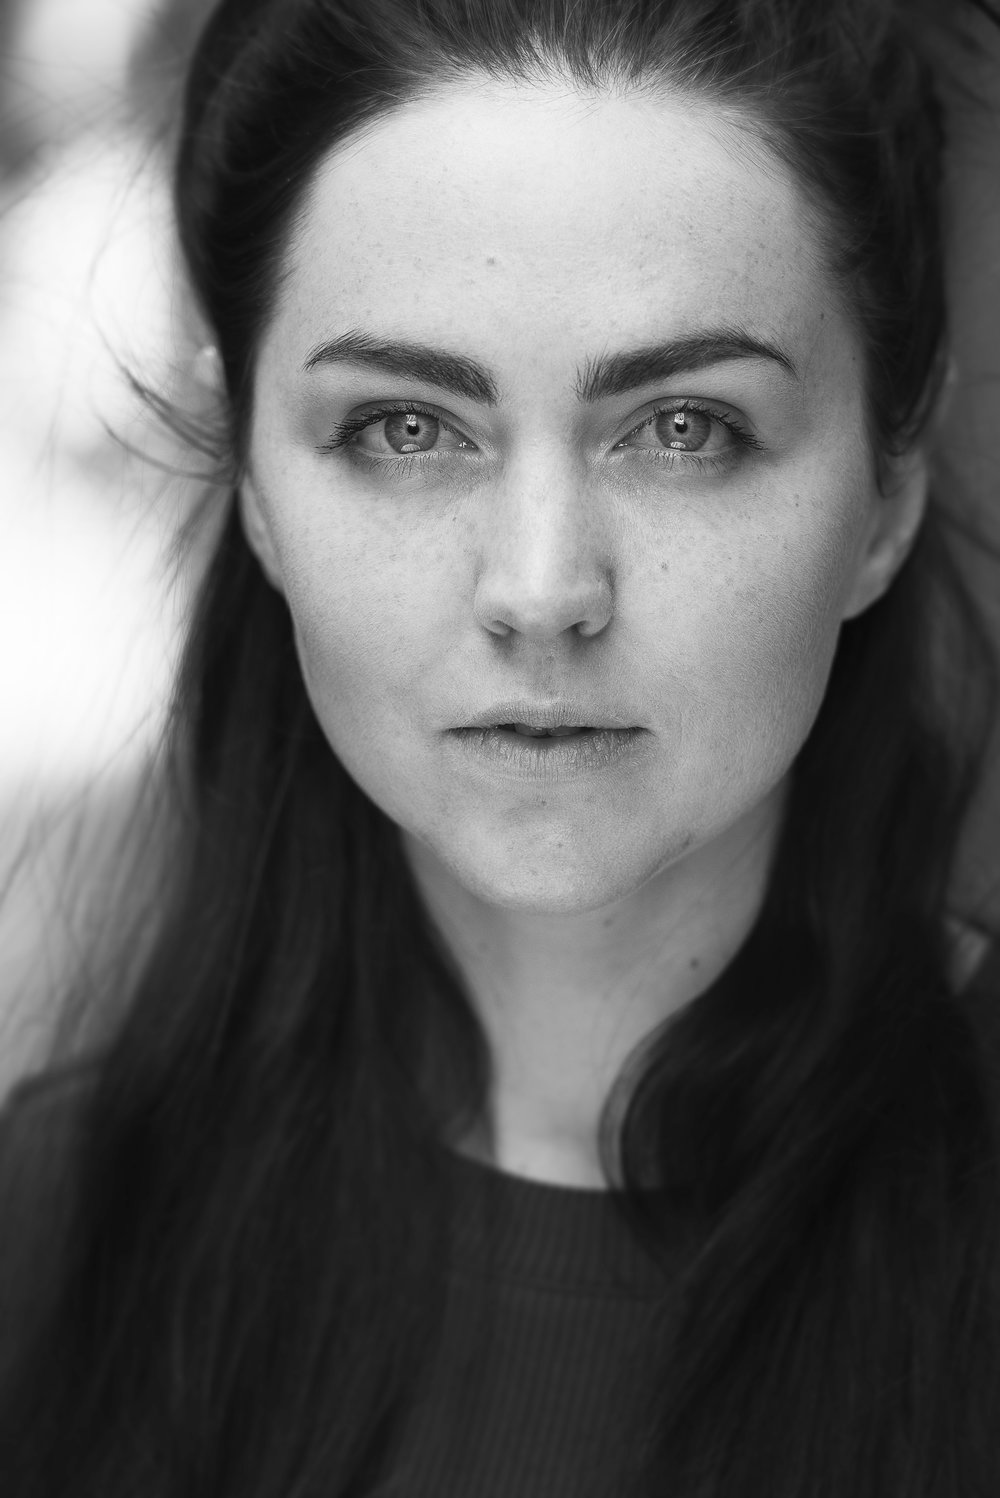 Kate-Goodfellow-003-B&W.jpg